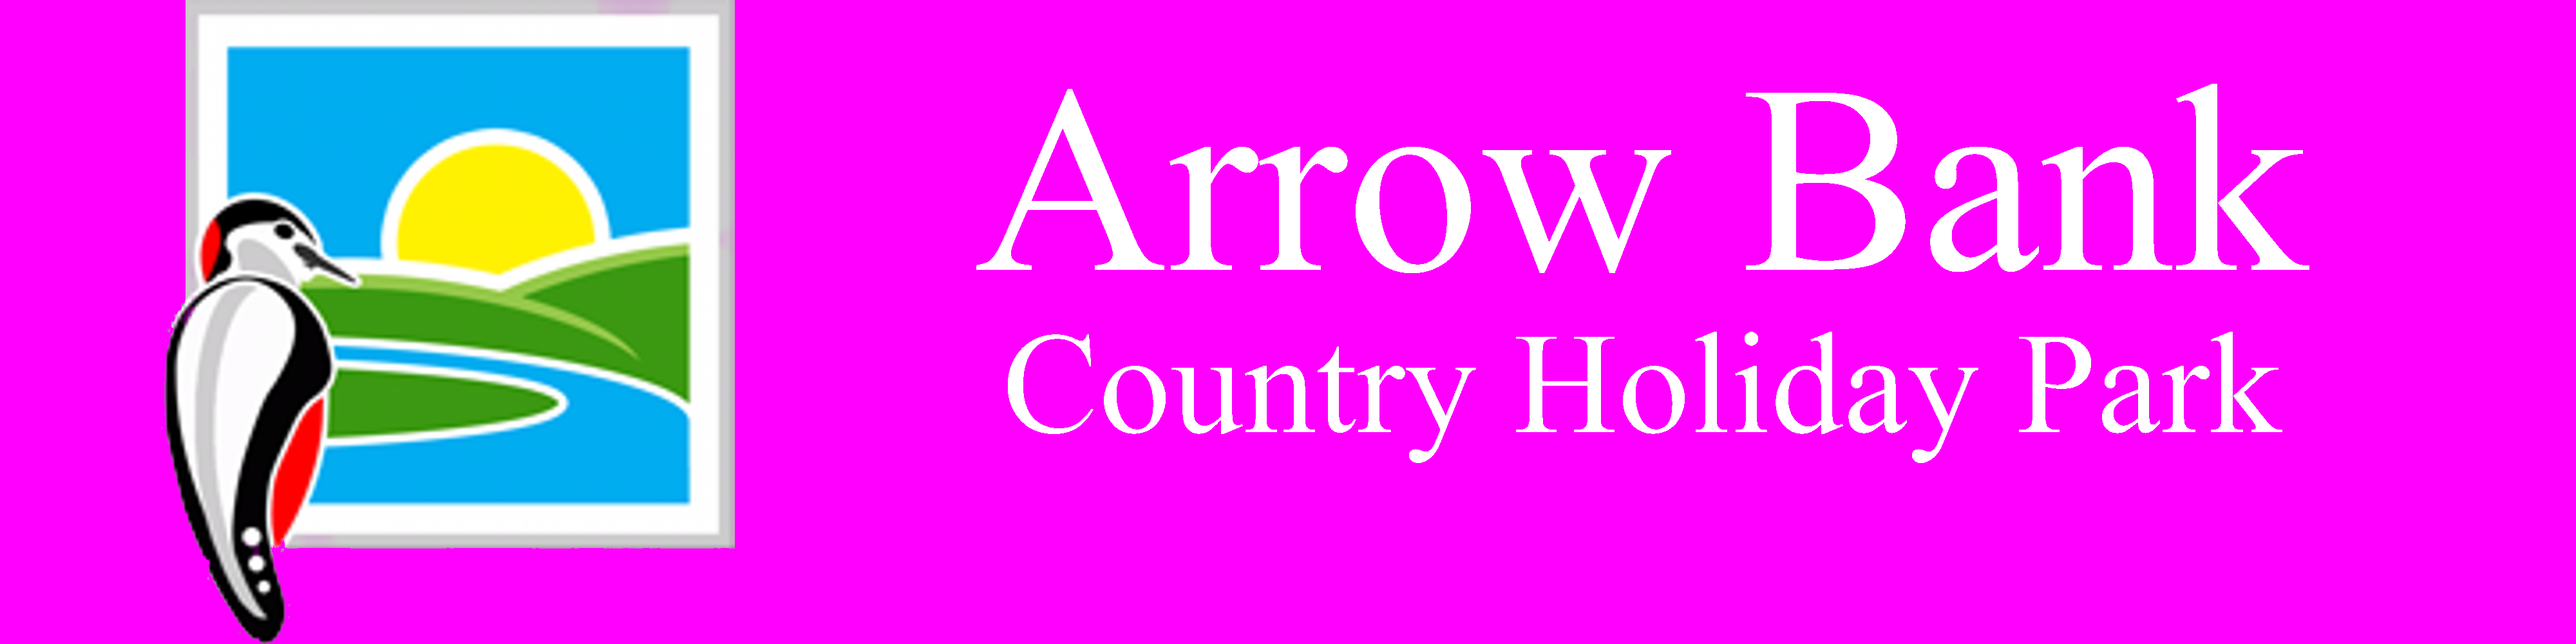 Arrowbank Country Holiday Park